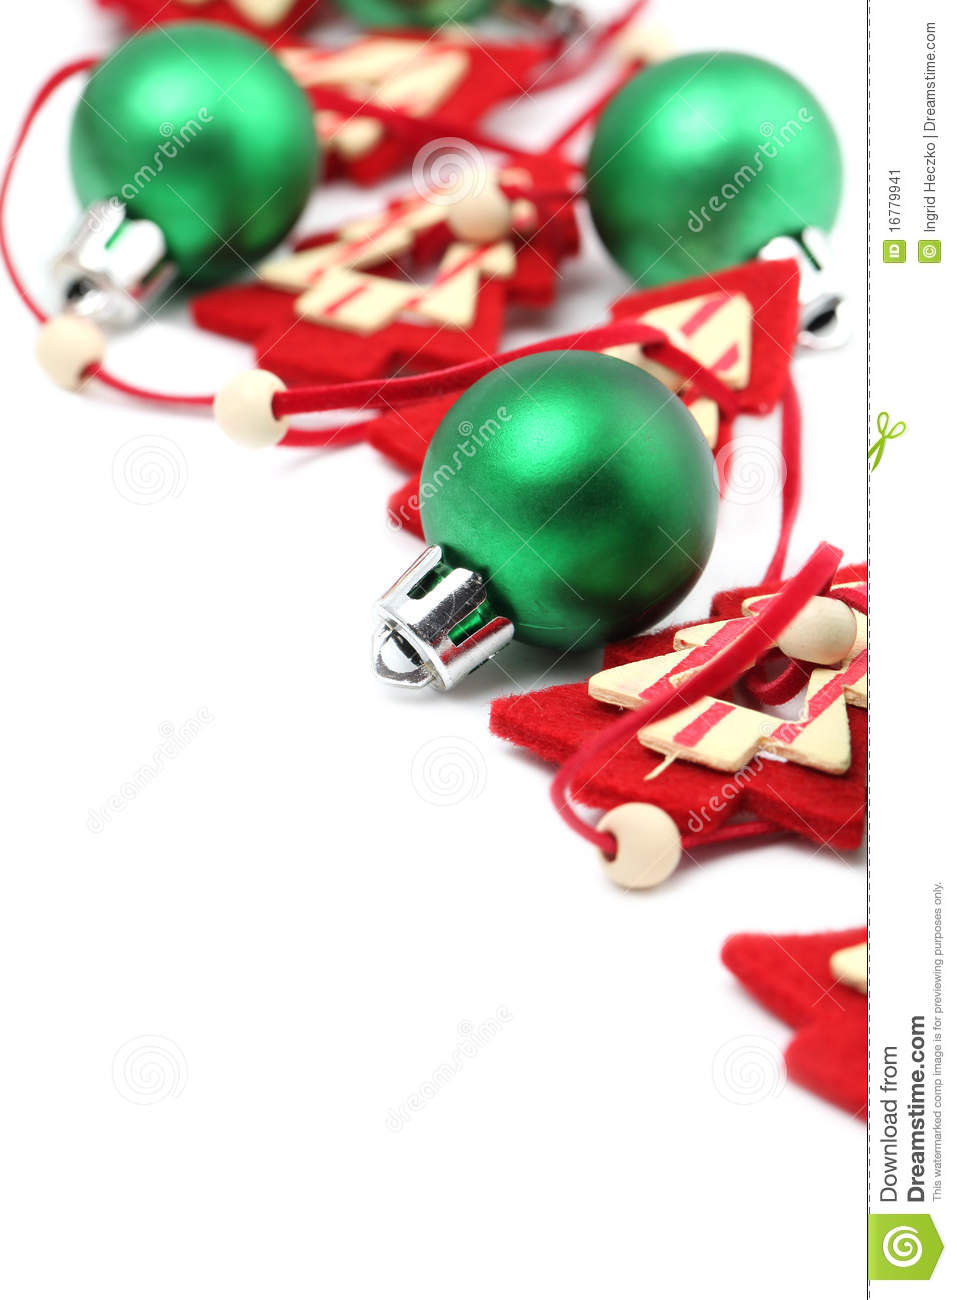 Green and red christmas decorations stock image image for Red and green christmas decorations